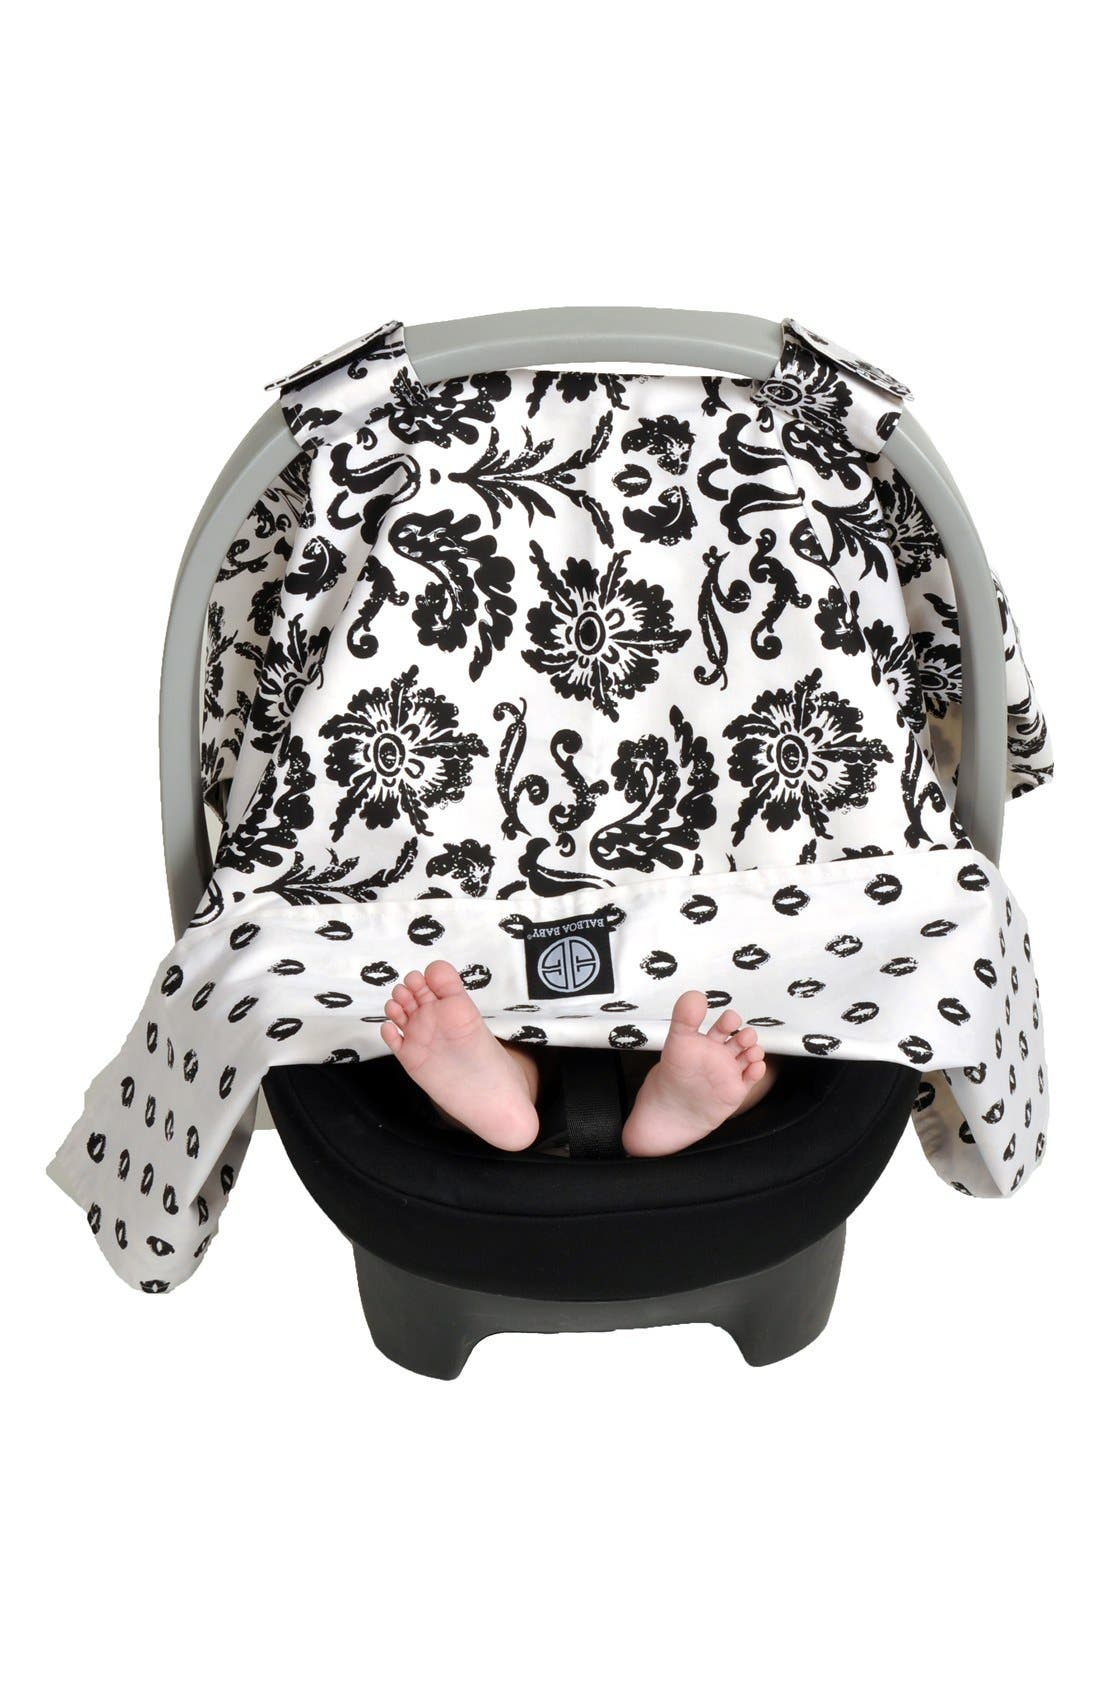 Main Image - Balboa Baby Reversible Car Seat Canopy  sc 1 st  Nordstrom & Balboa Baby Reversible Car Seat Canopy | Nordstrom